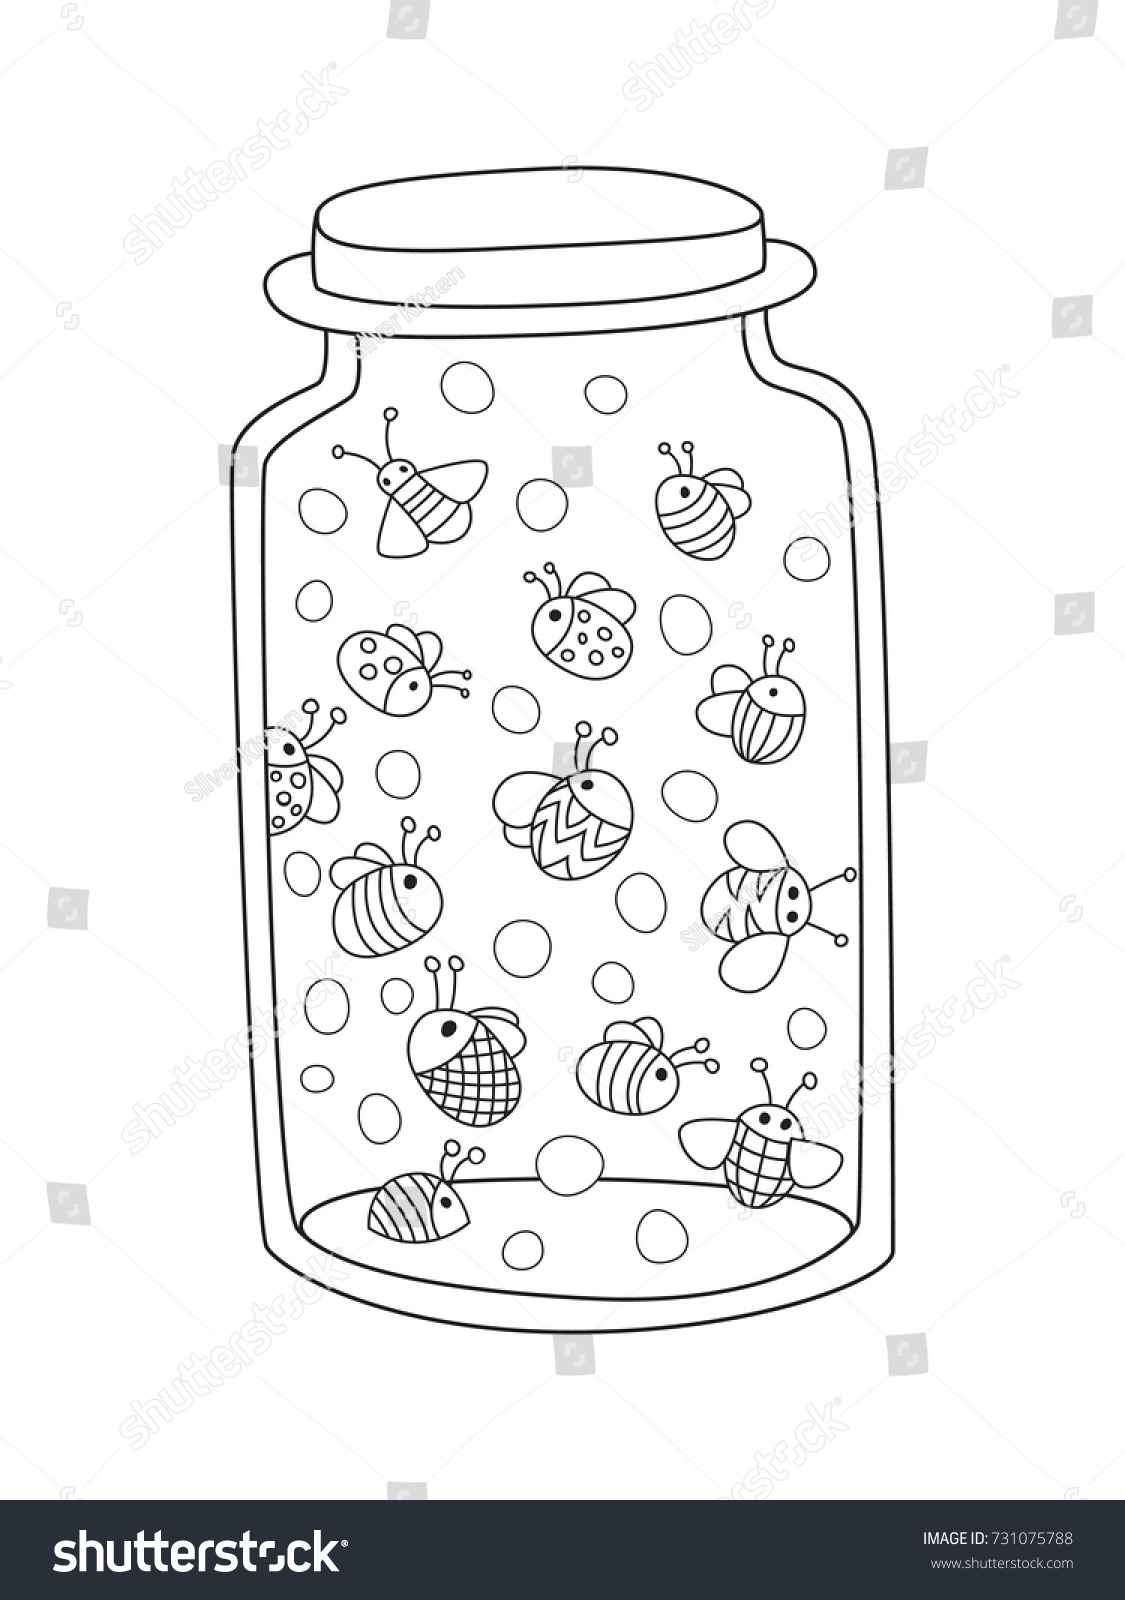 Outlined Doodle Antistress Coloring Page Bottle Stock Vector ...